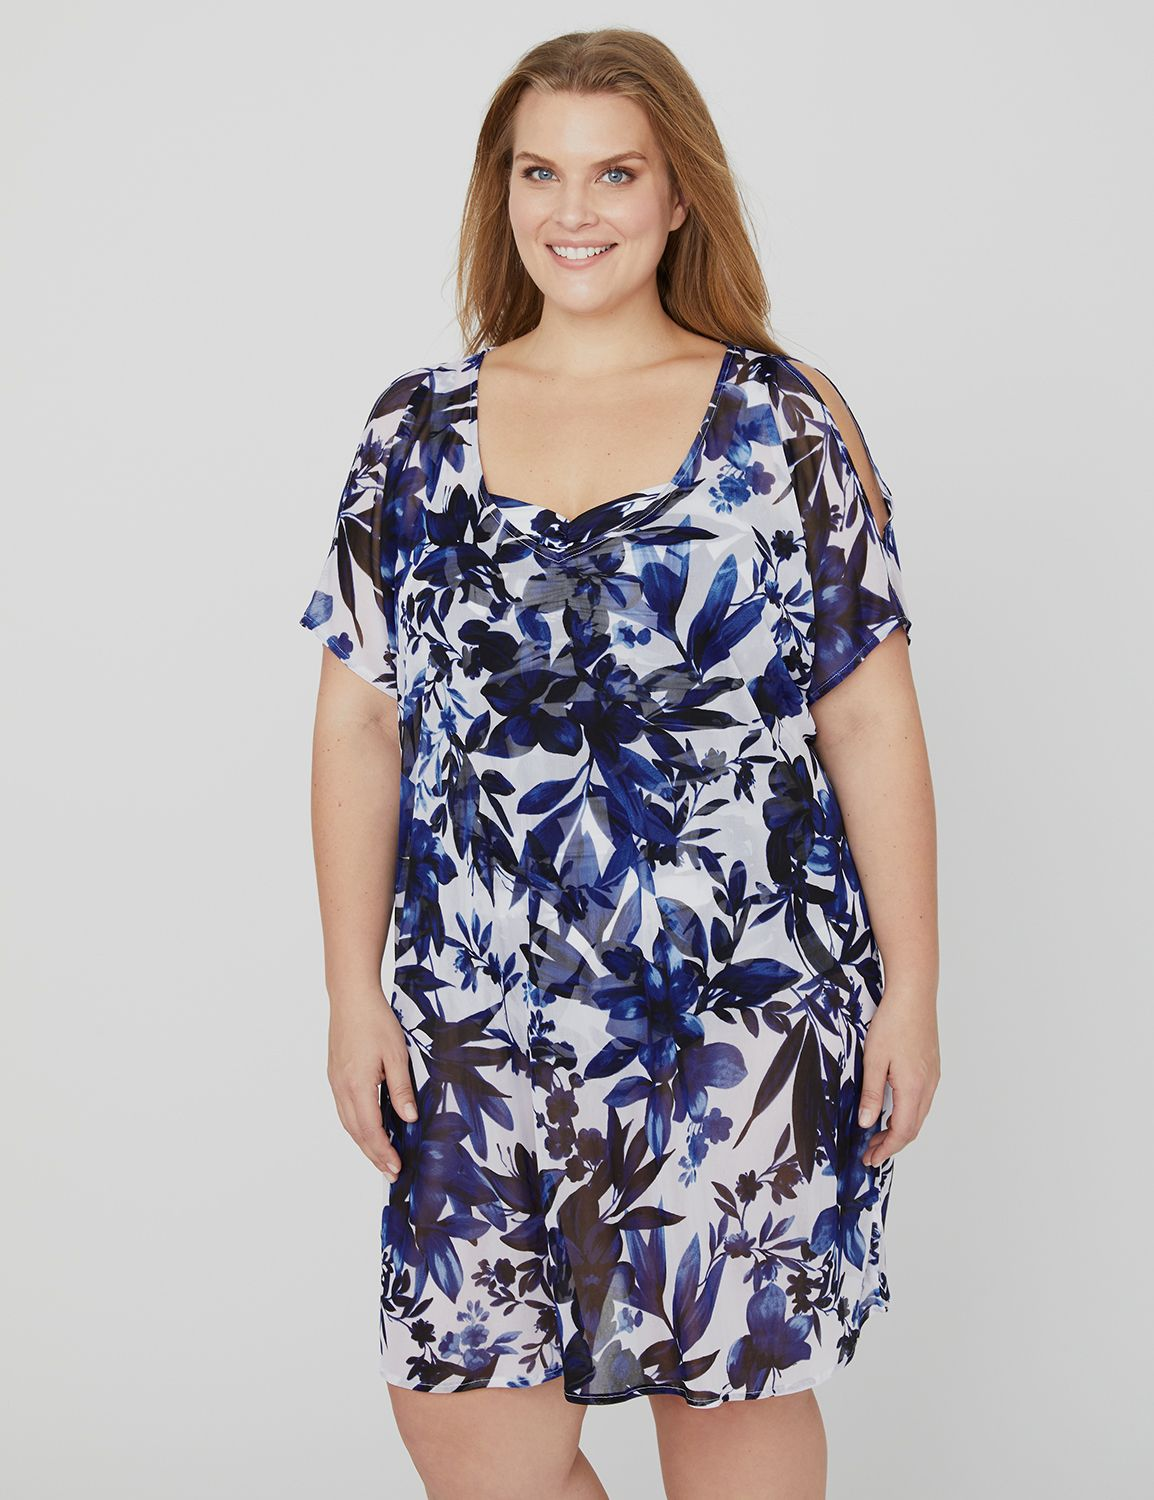 Lakeside Floral Sheer Cover-Up 1088510-Printed Mesh Cover-up MP-300096424